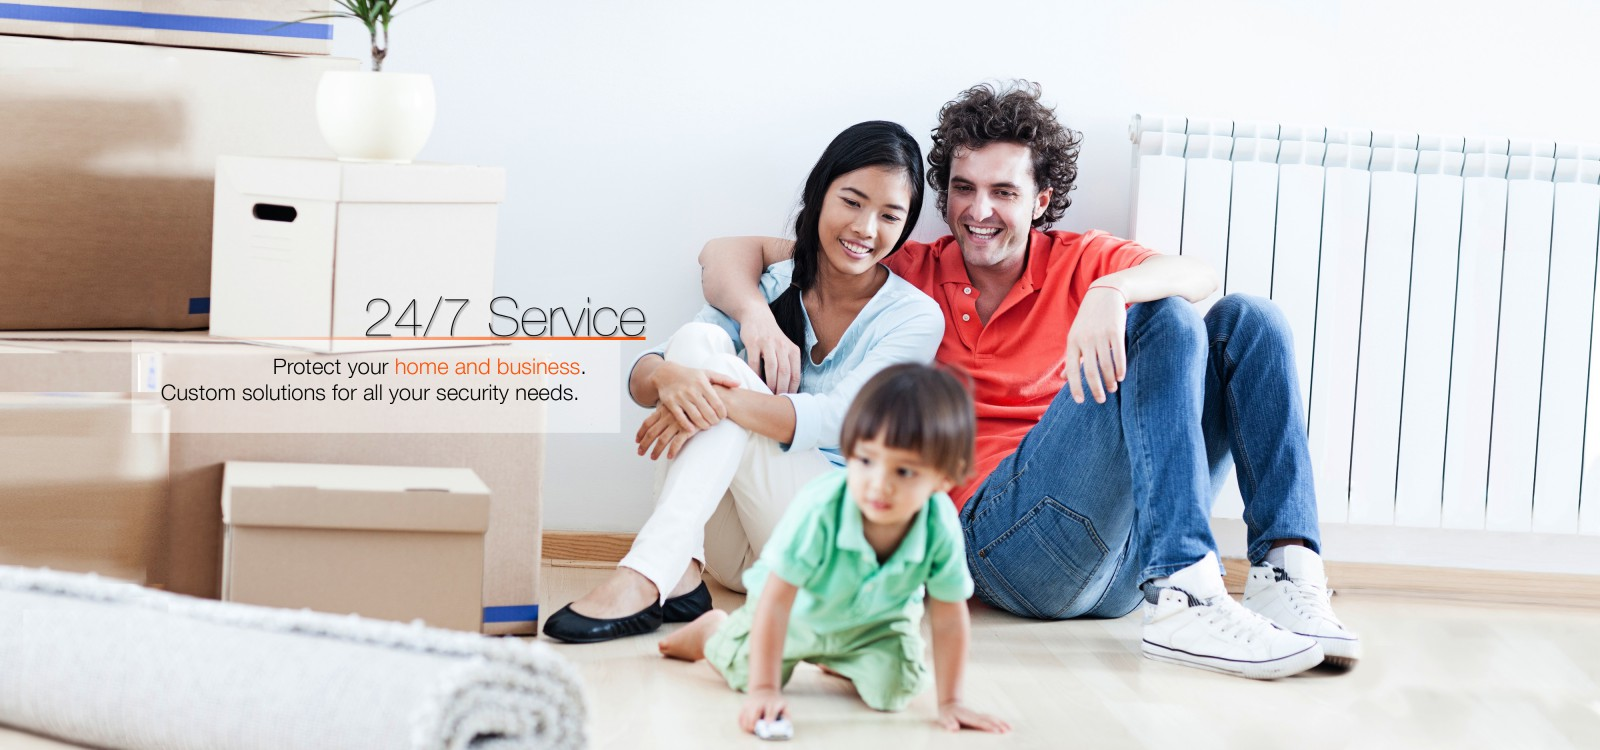 Residential alarm services with Ambit Security Systems